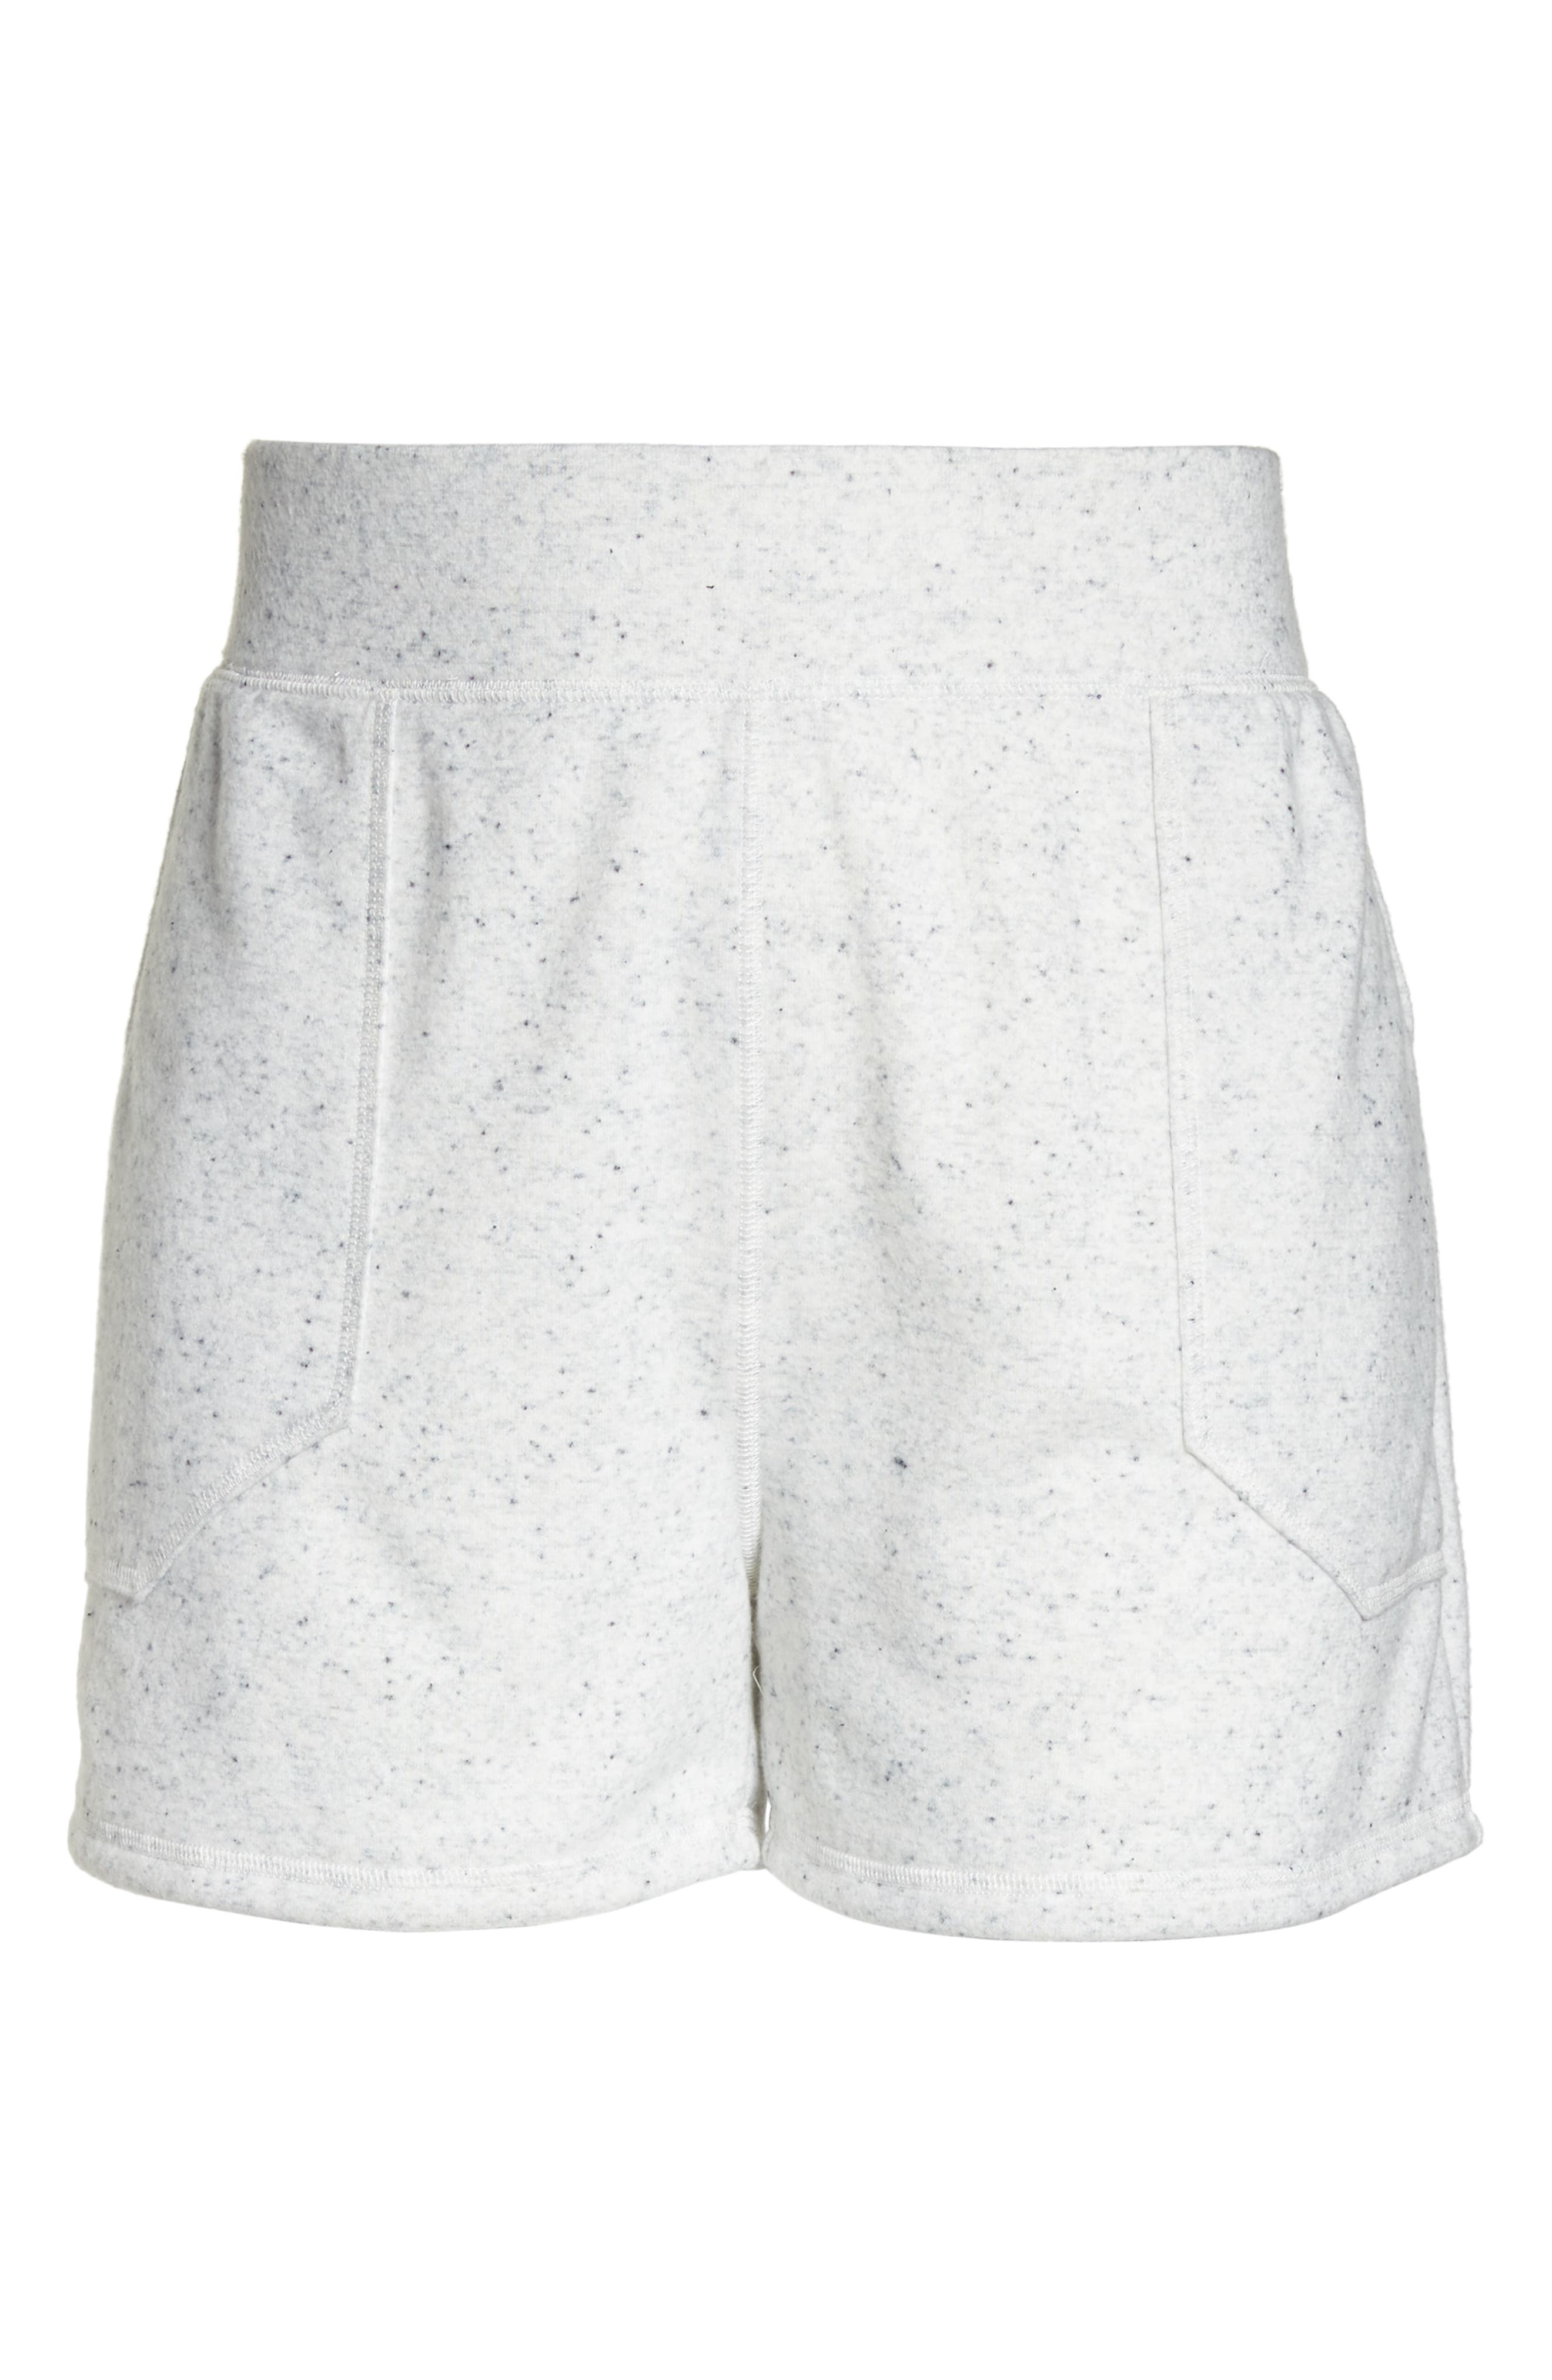 French Terry Shorts,                             Alternate thumbnail 7, color,                             Grey Heather